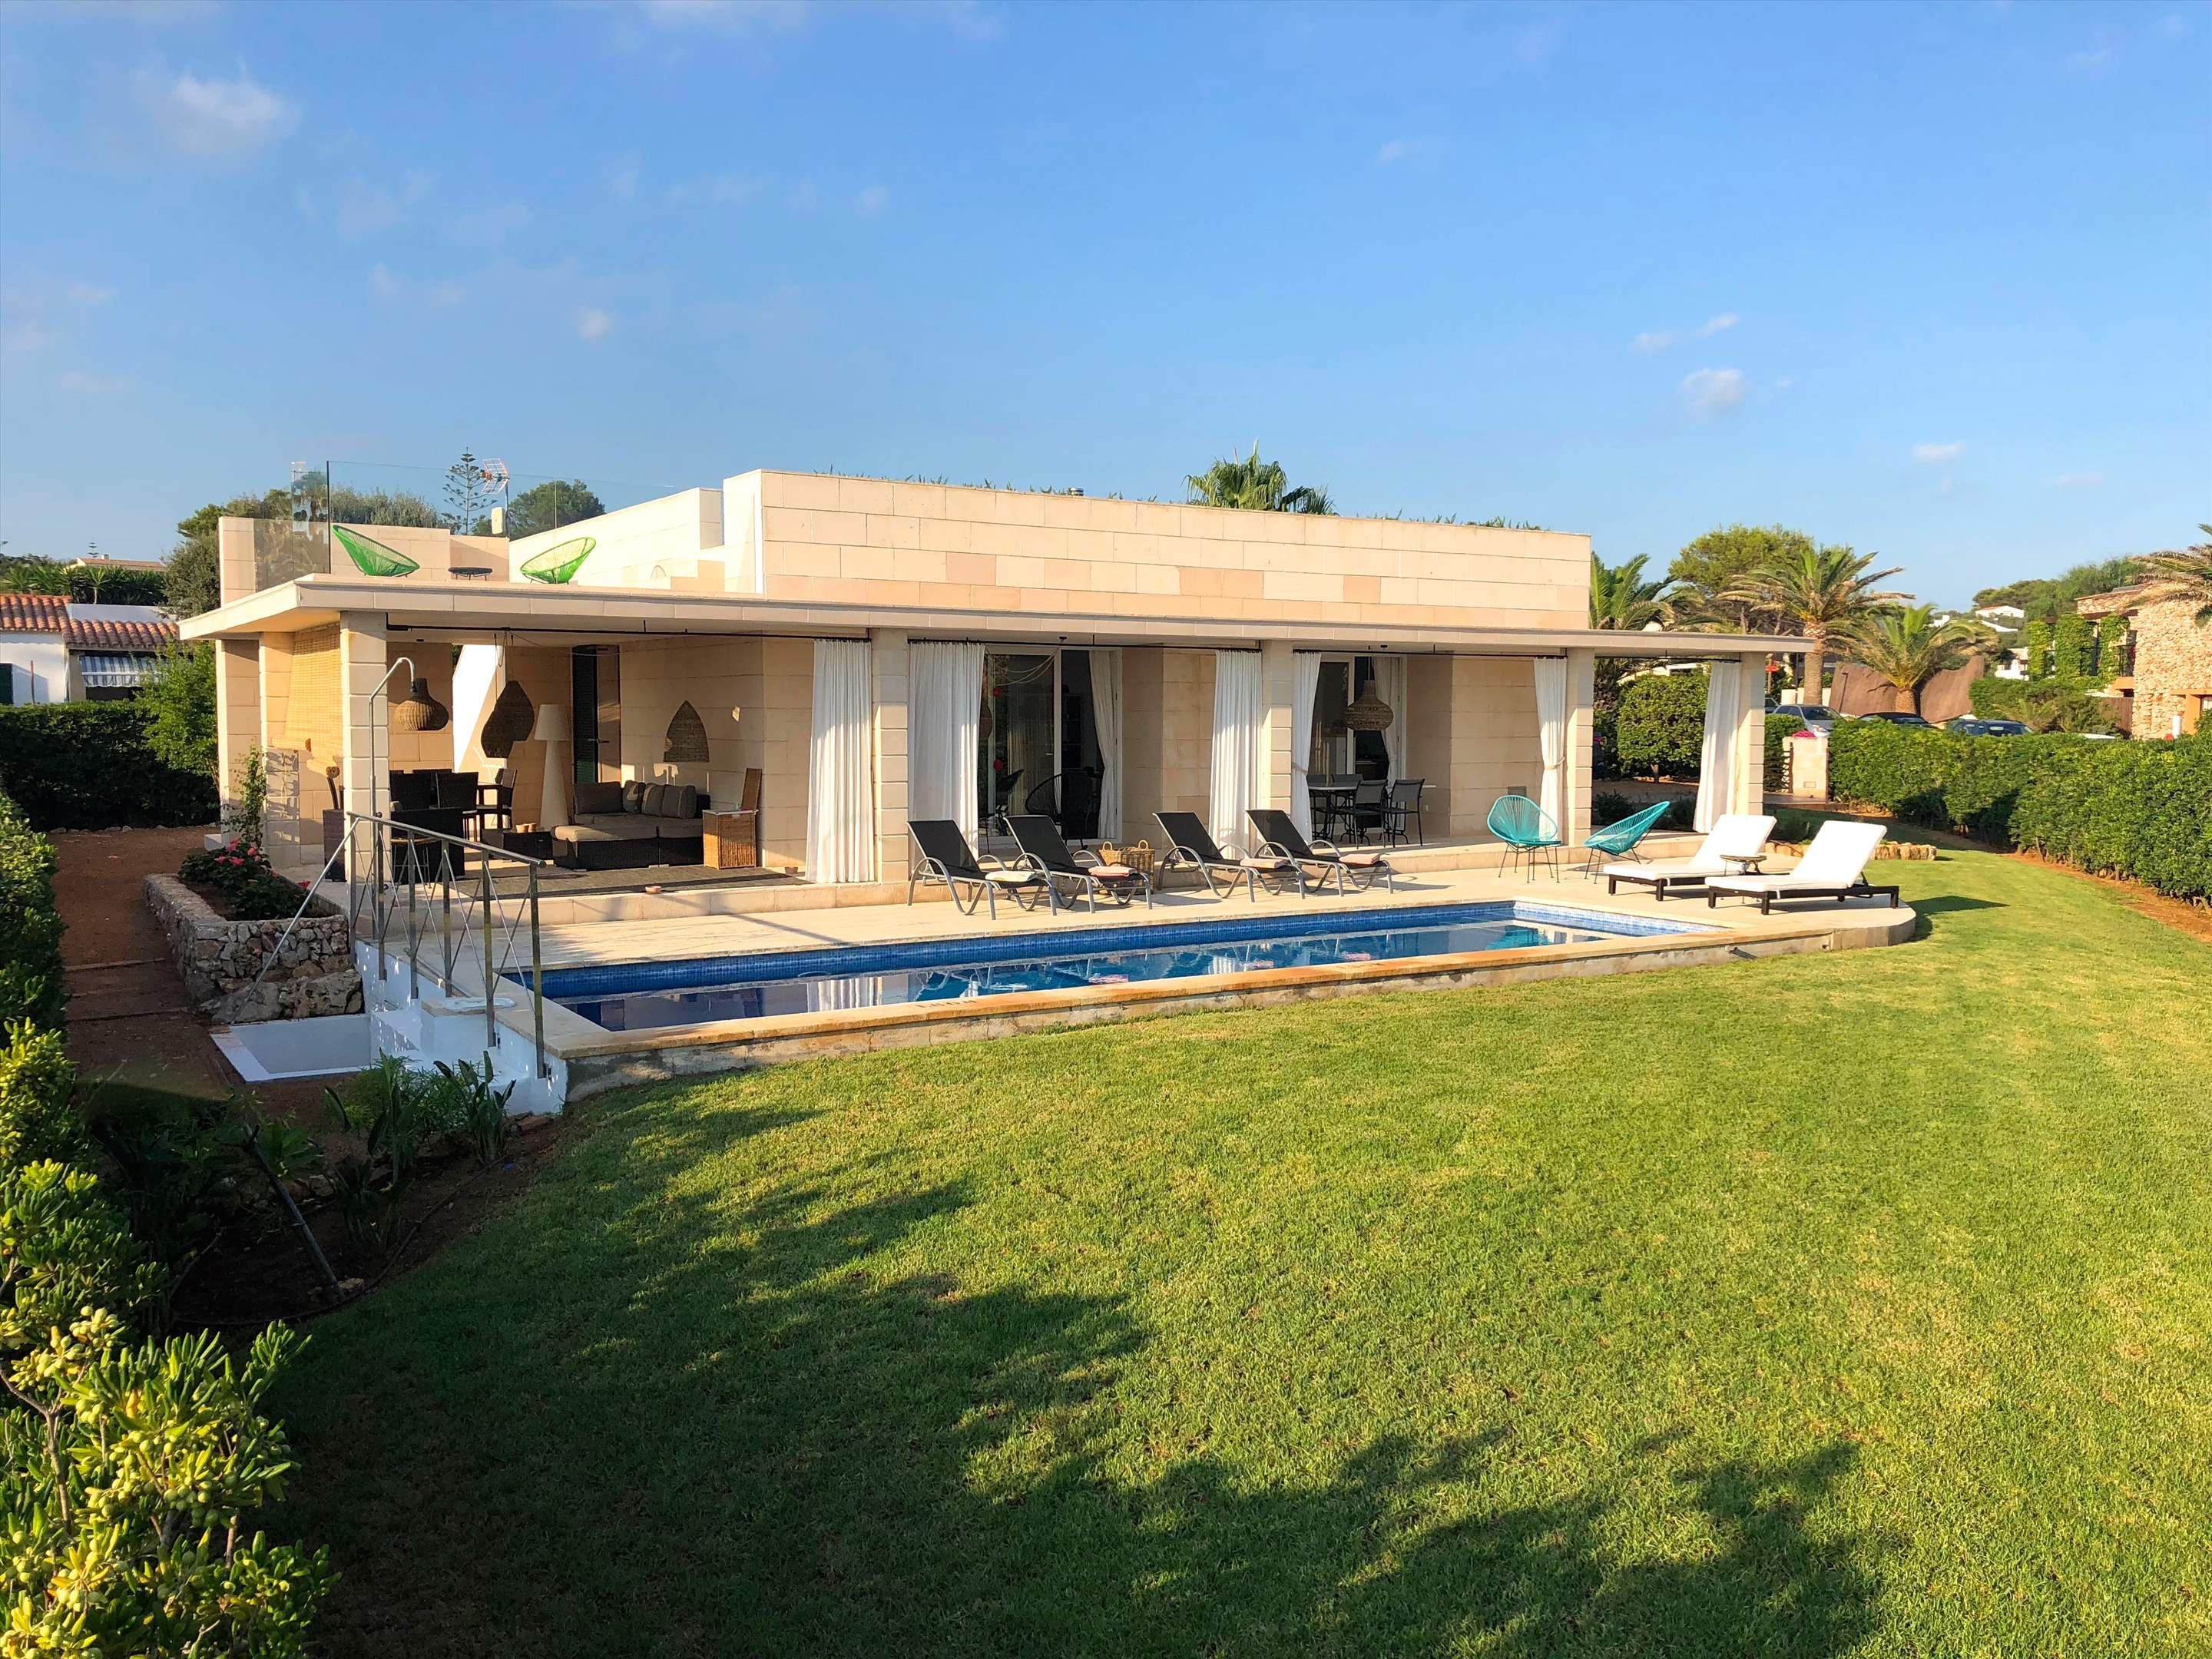 Villa Zapa, 3 bedroom villa in Mahon, San Luis & South East, Menorca Photo #1